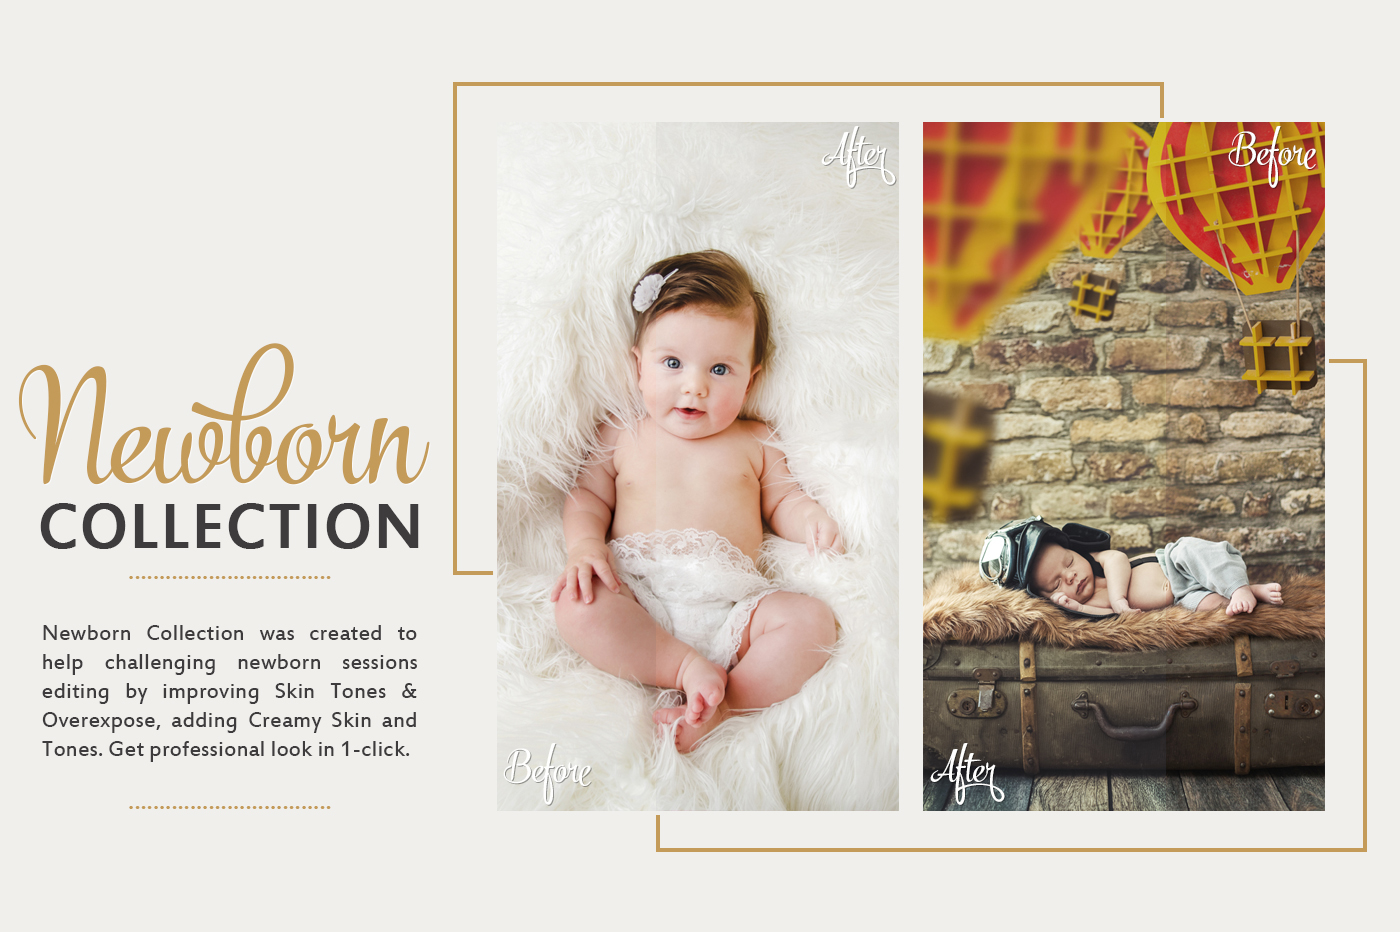 Before & after-Newborn-Lightroom-Presets-by-BeArt-presets (2).jpg